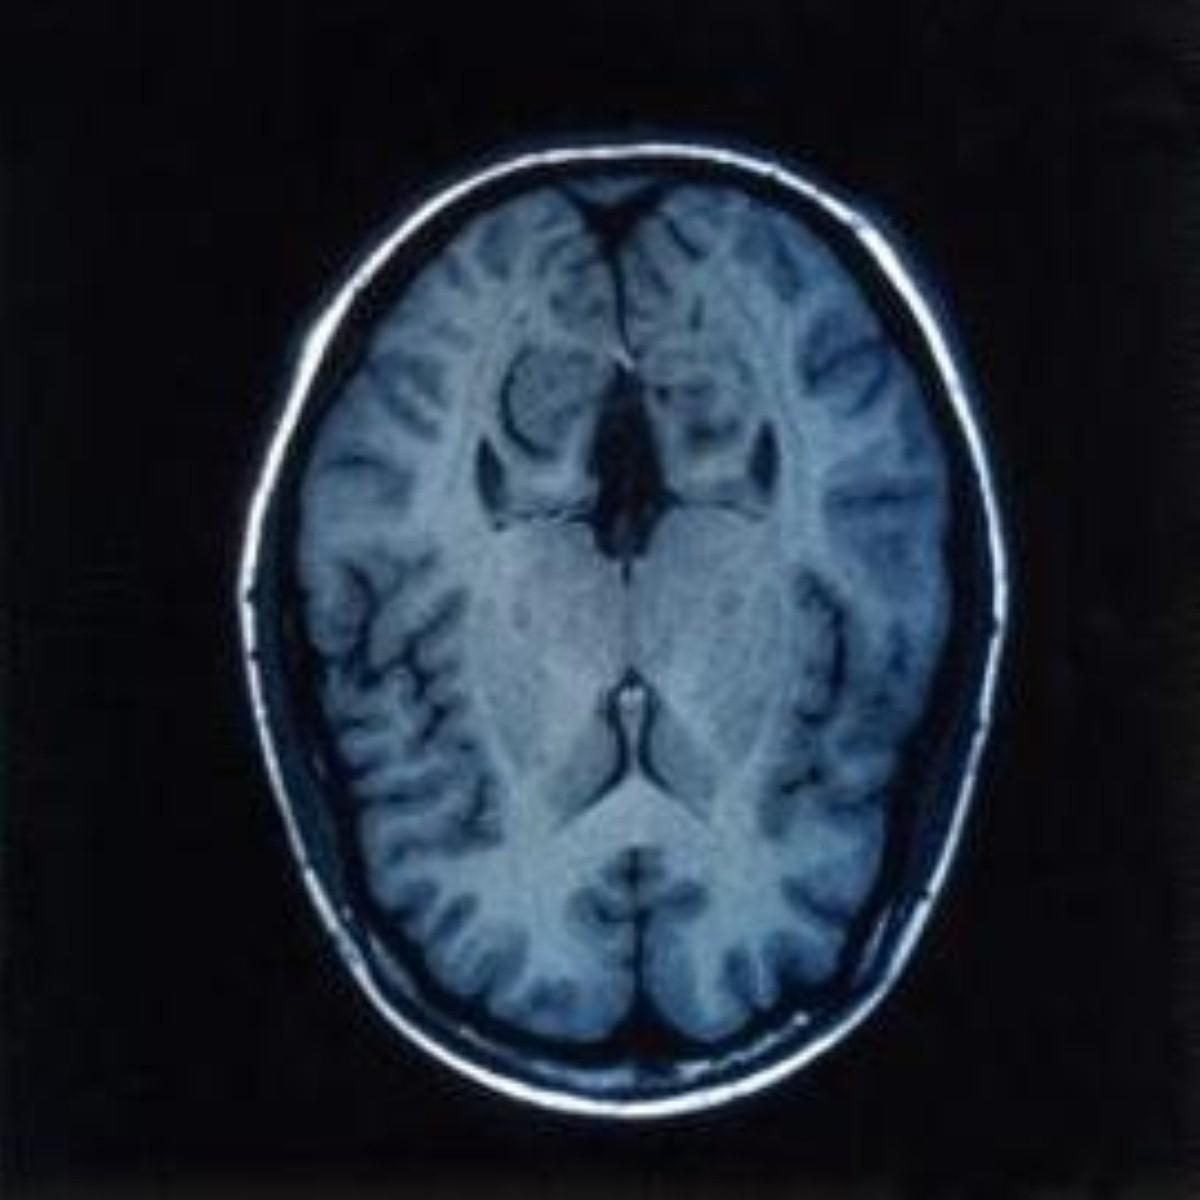 Cell research may benefit Huntington's and Alzheimer's patients